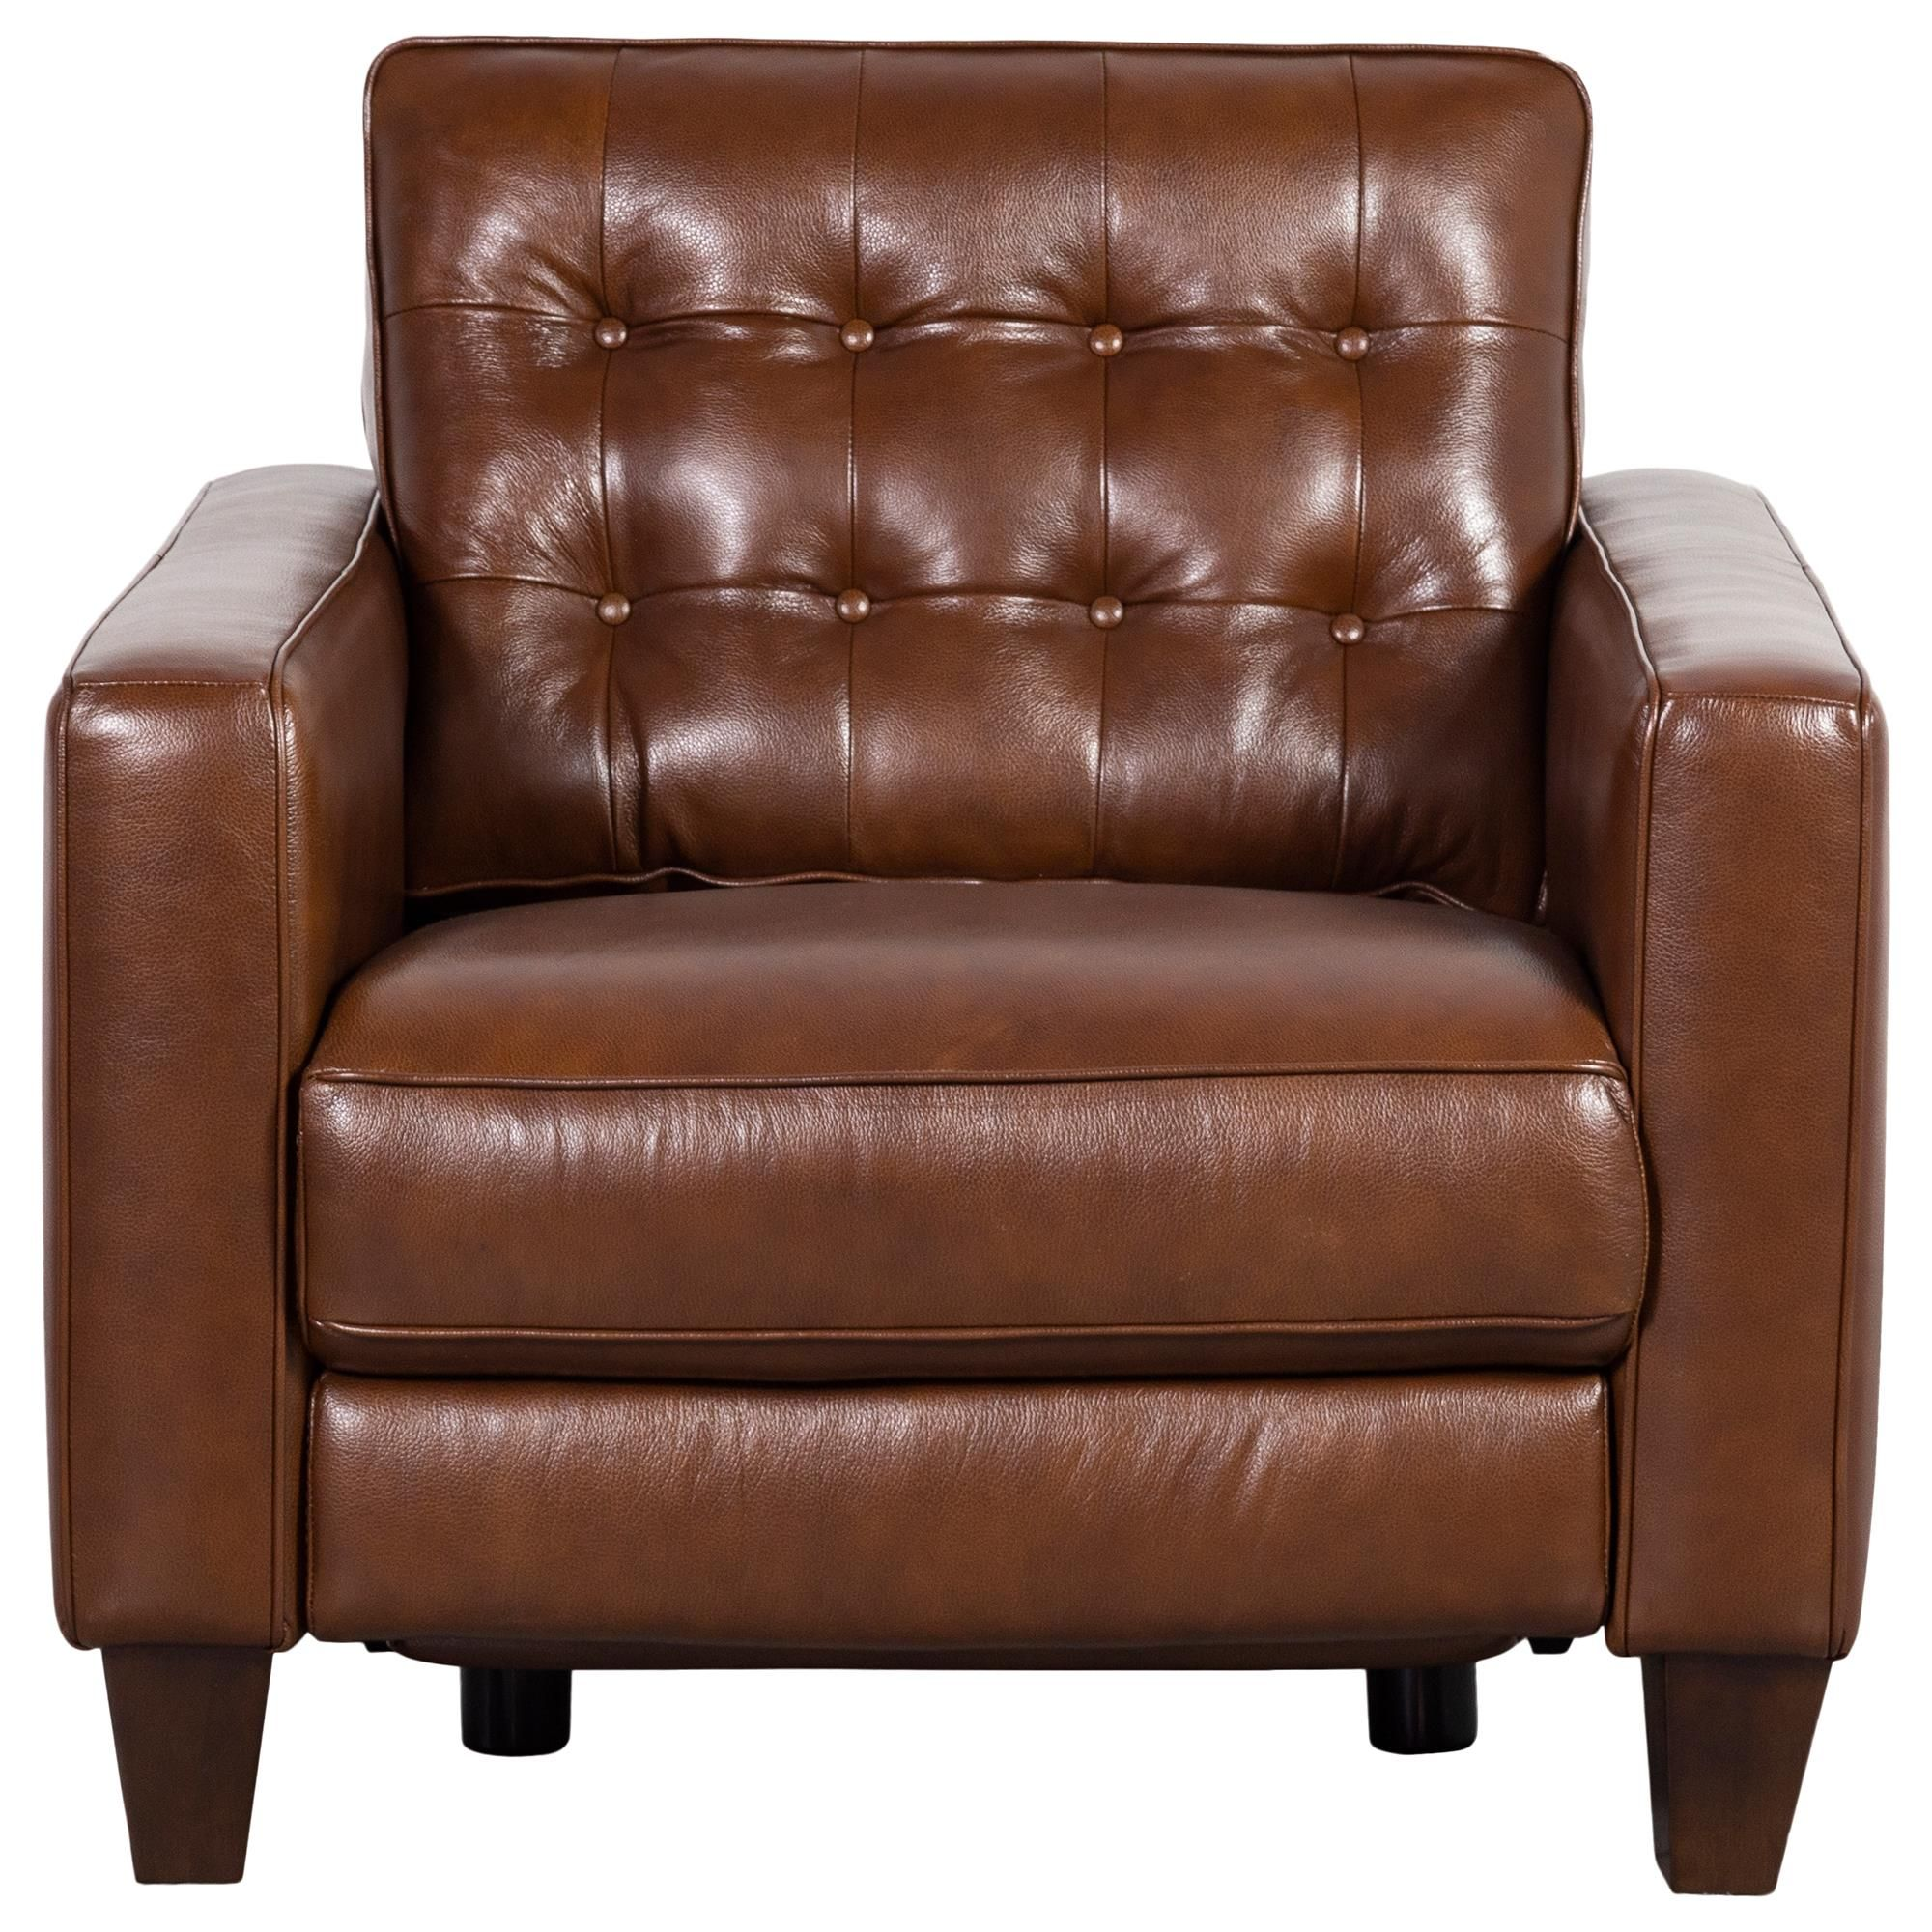 Violino Leather Chair With Power Footrest In Classico Chestnut Nebraska Furniture Mart In 2020 Leather Chair Foot Rest Nebraska Furniture Mart